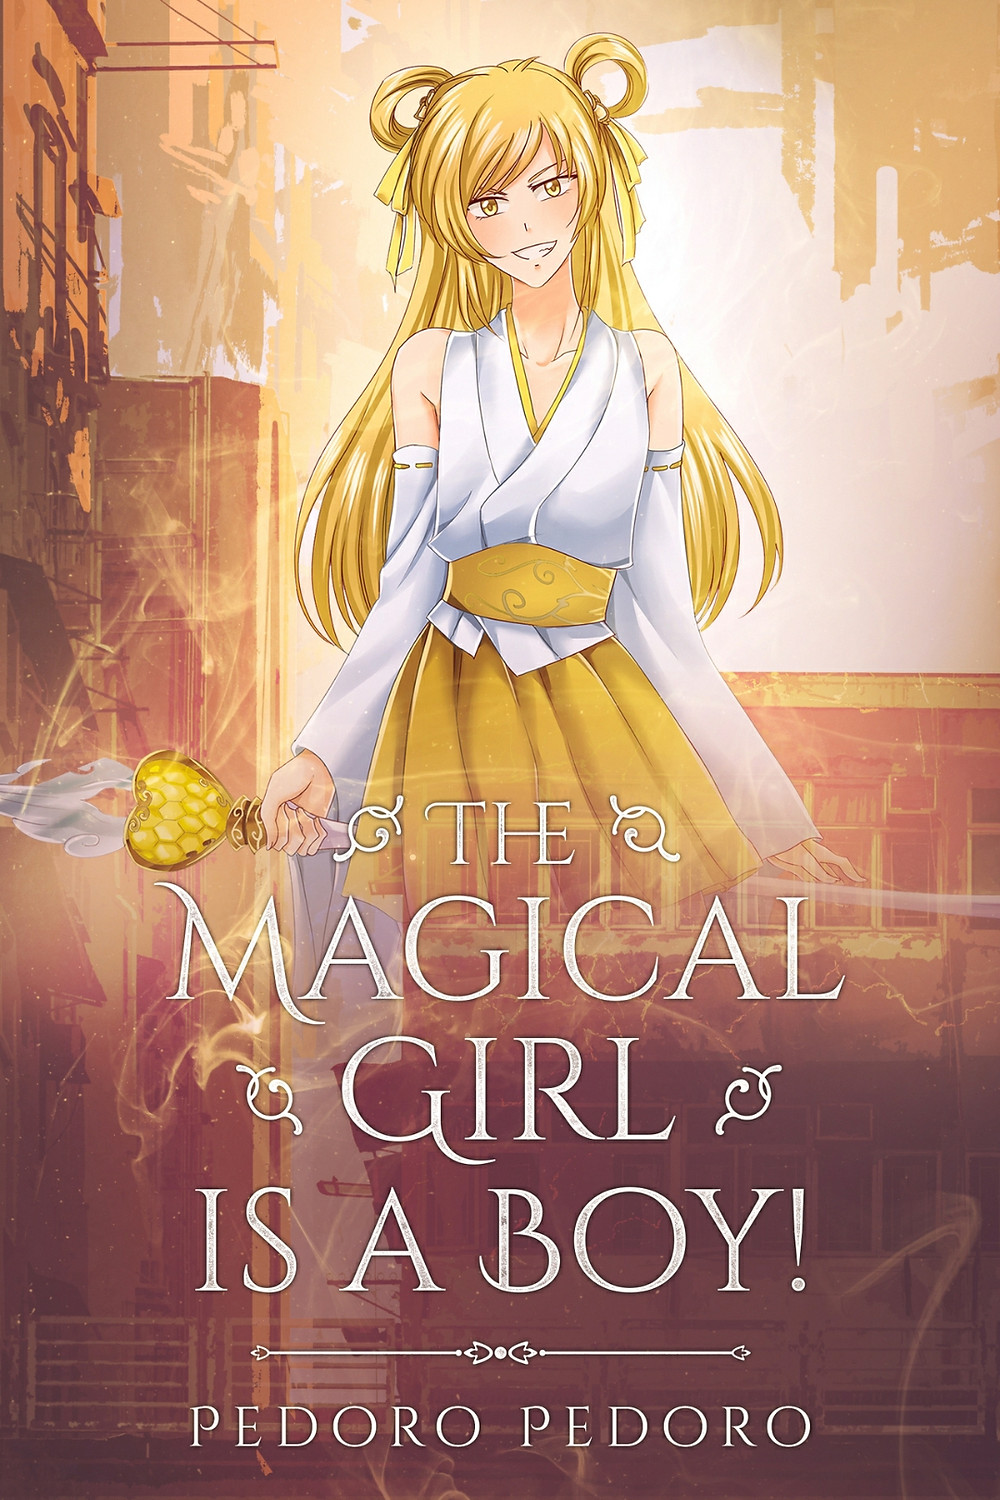 Magical Girl is a boy! Cover. Cute blond magical girl